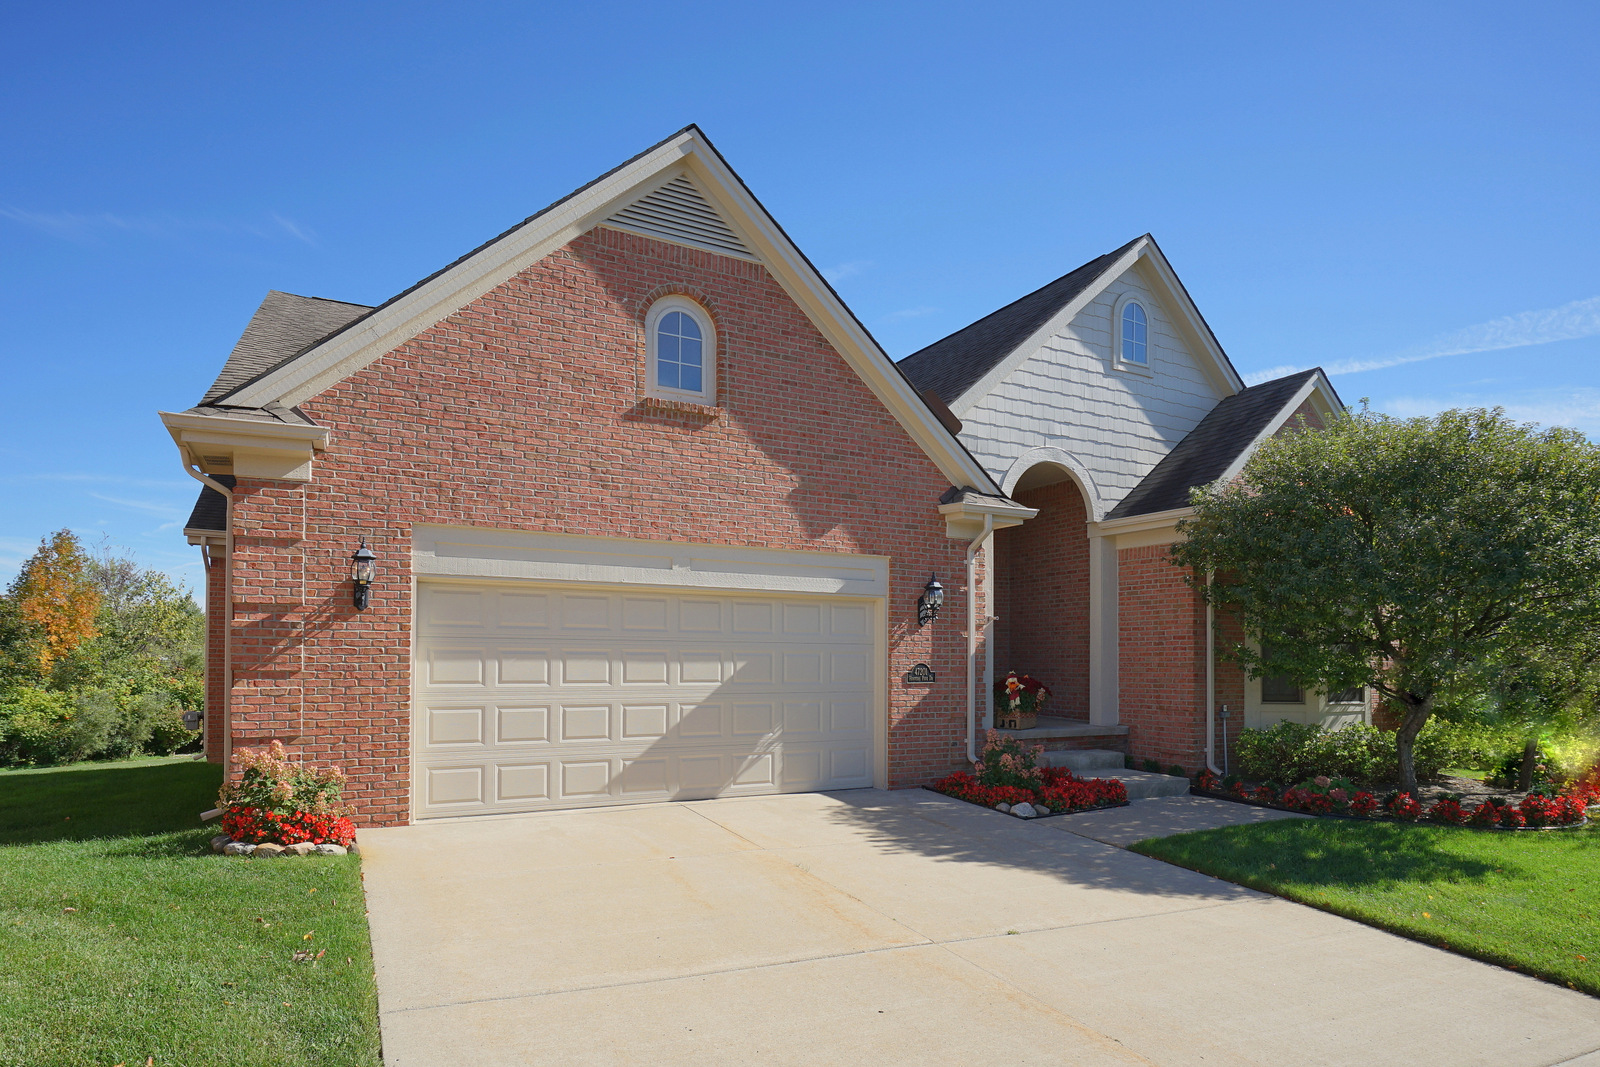 Detached 1 2 And 3 Car Garages In Nc: Just Sold! 47201 Hunters Park Drive, Plymouth: Detached